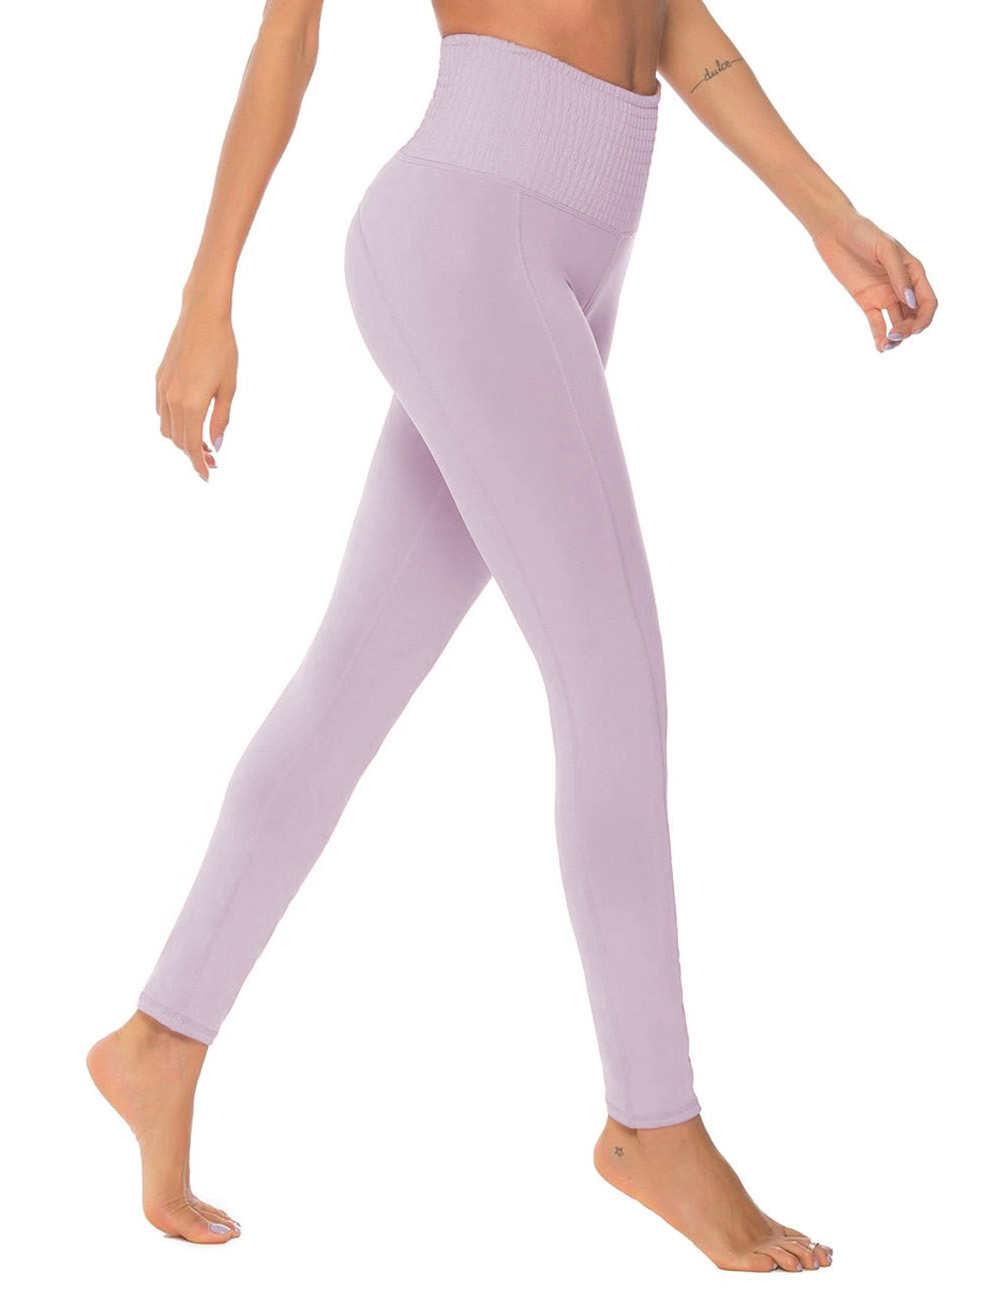 //cdn.affectcloud.com/hexinfashion/upload/imgs/Sportswear/Yoga_Legging/YD190087-PL3/YD190087-PL3-201911025dbd2b408fb79.jpg